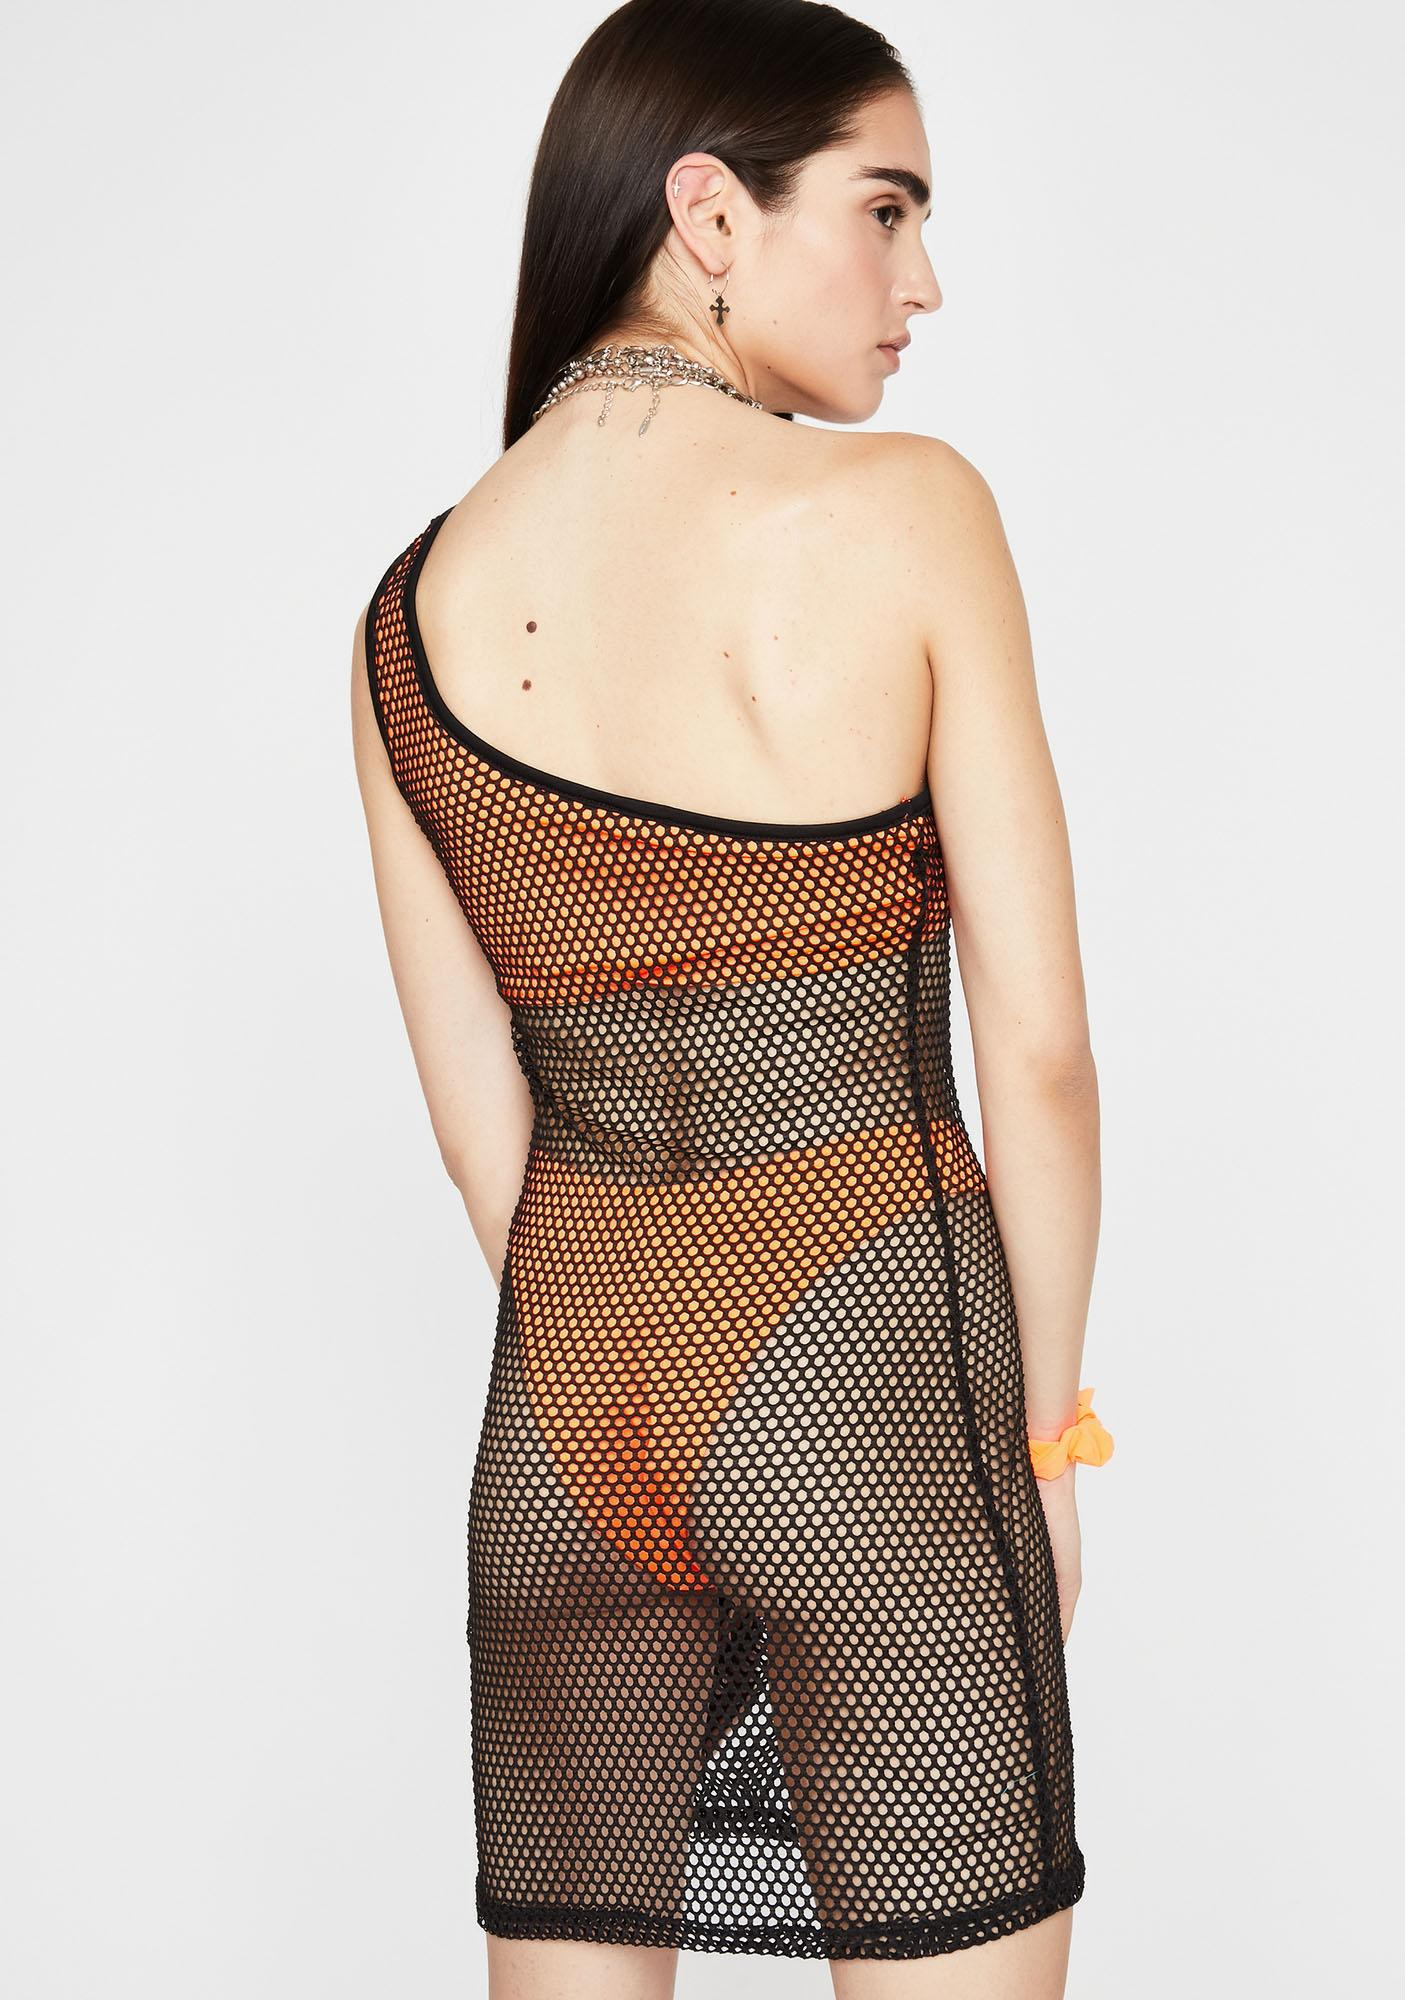 Juicy Viral Vibez Fishnet Dress